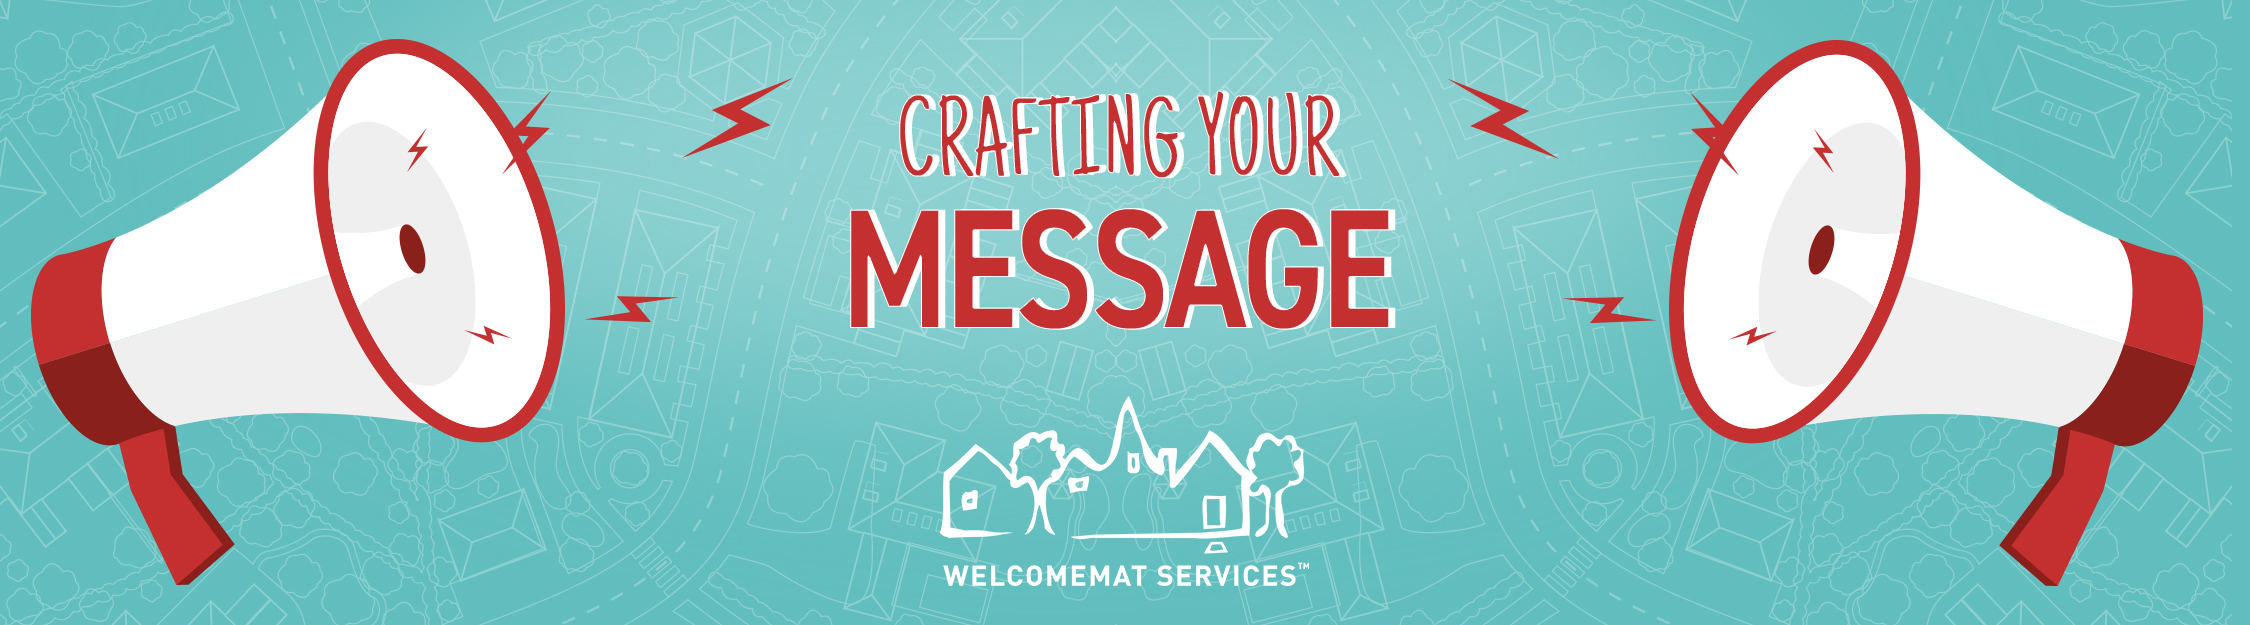 crafting-your-message-blog